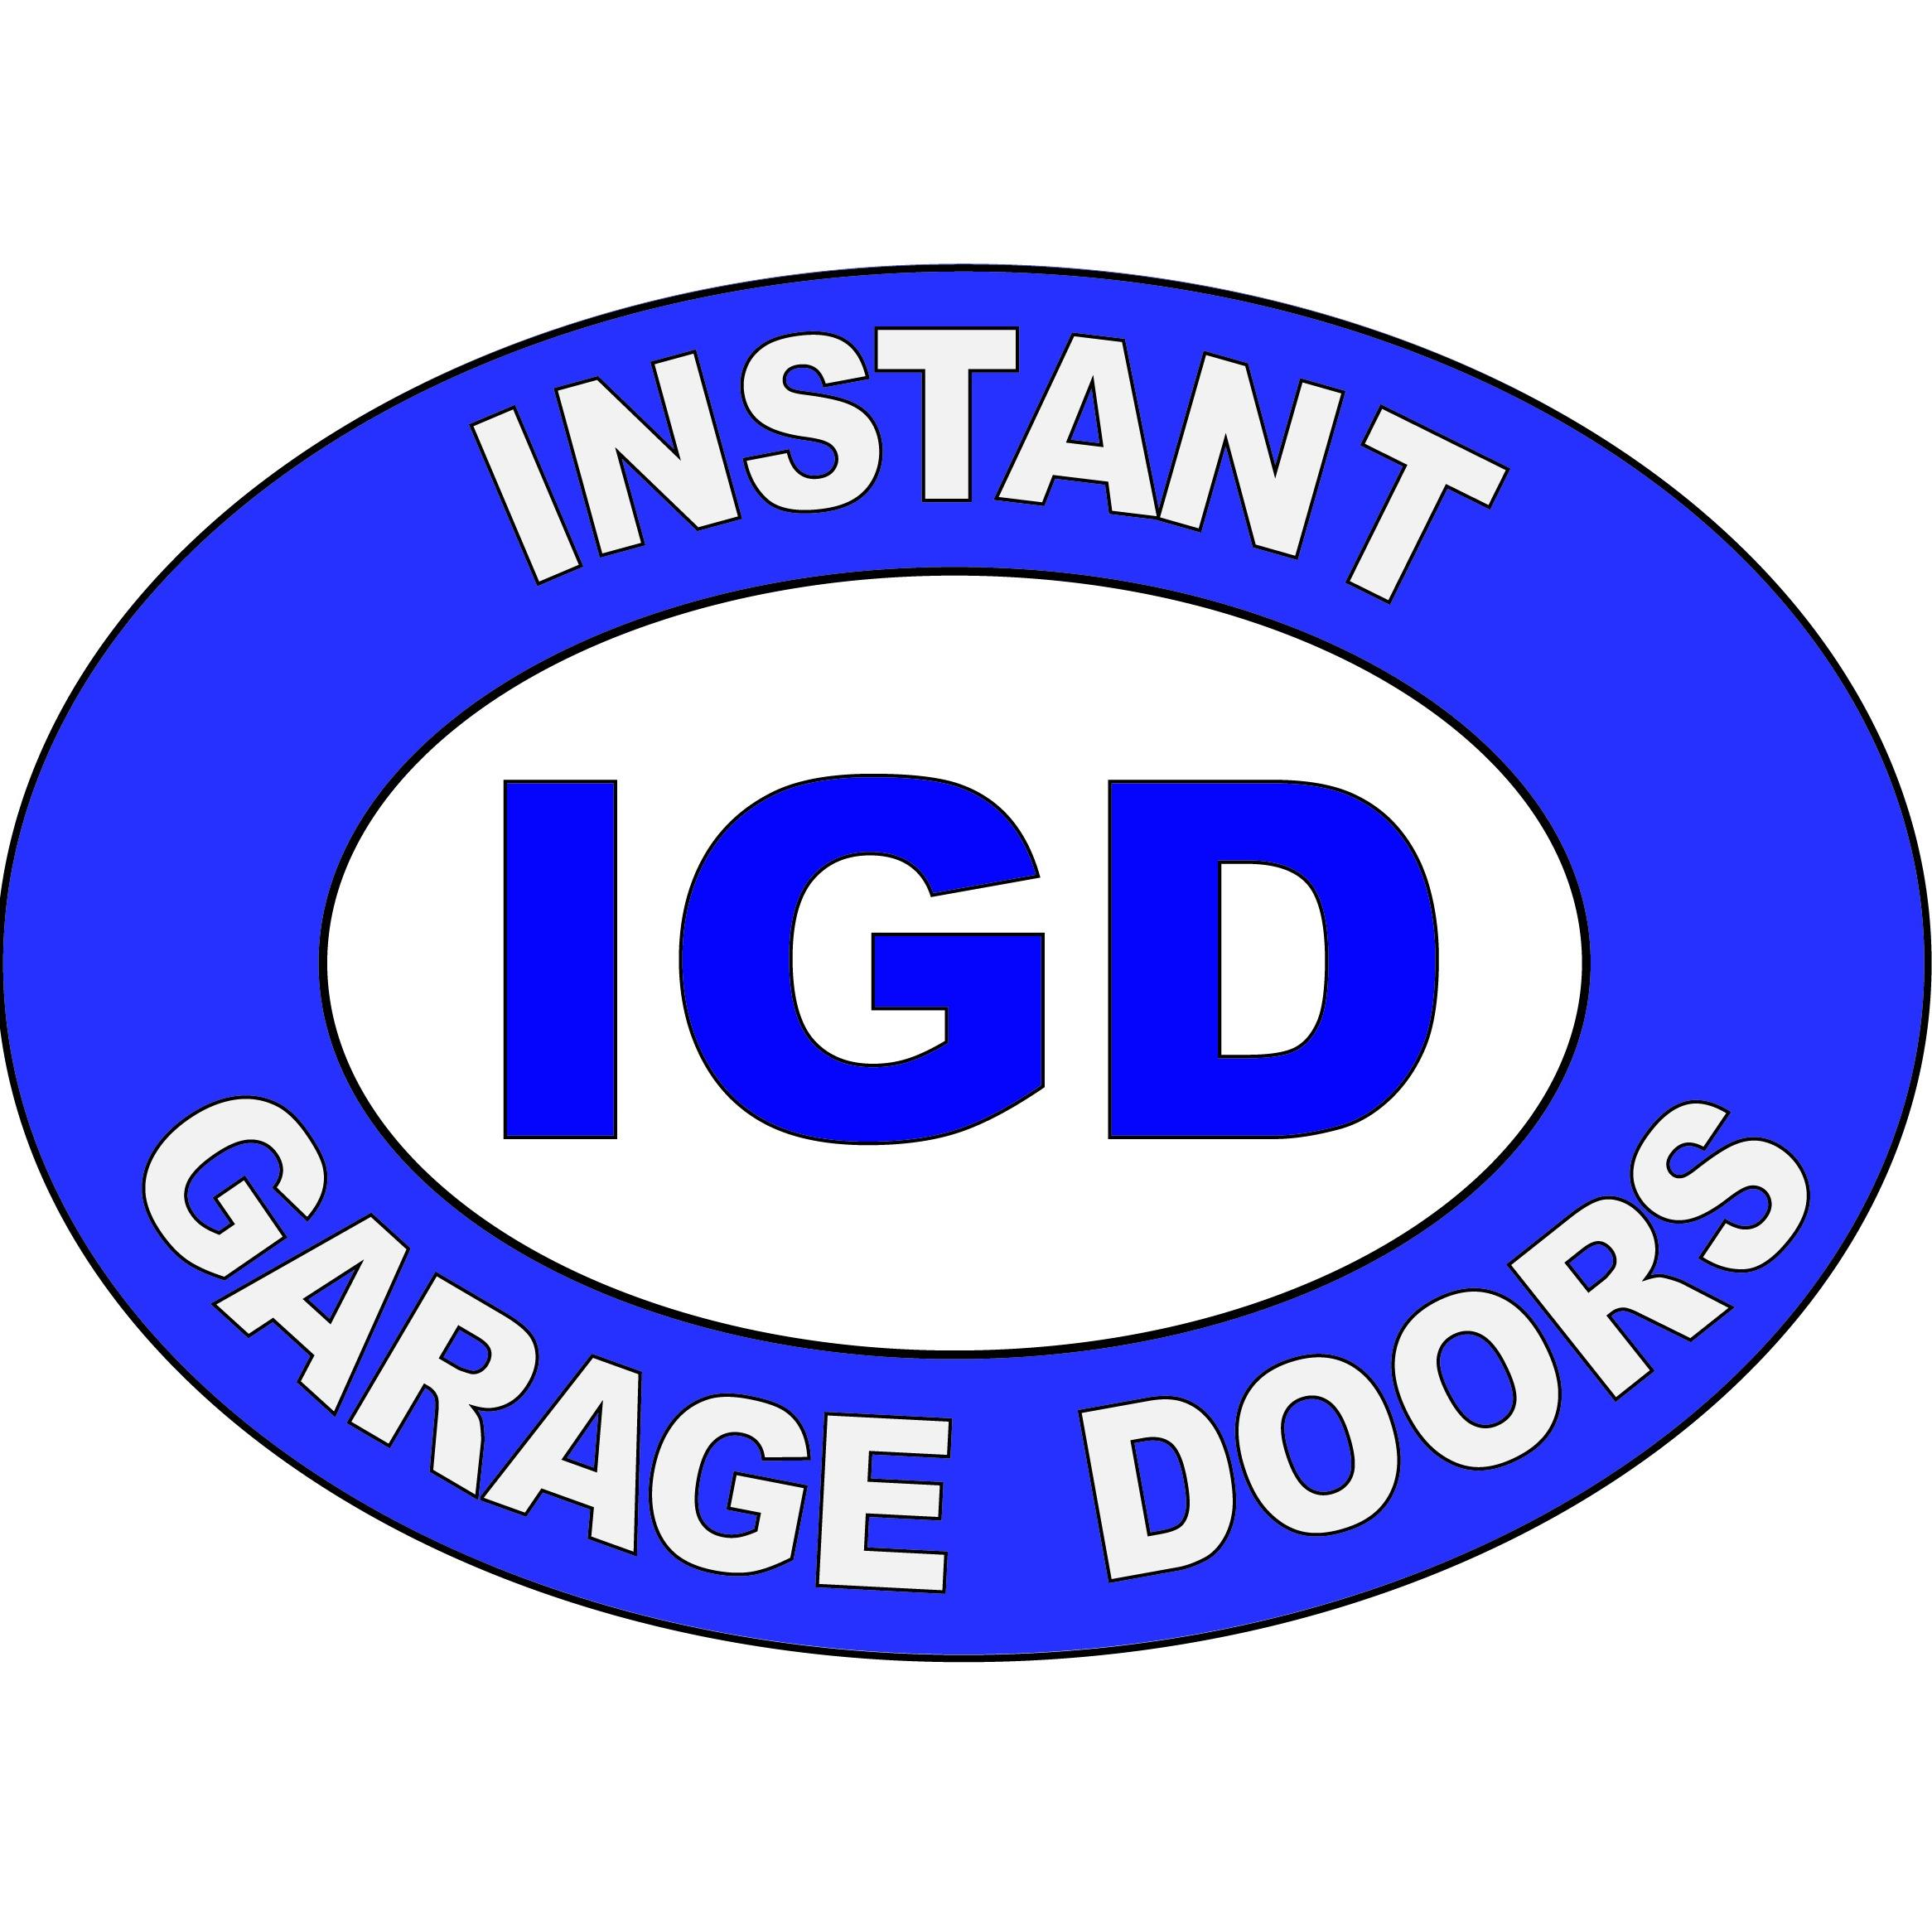 Instant Garage Euro : Instant garage door repair igd coupons renton wa near me